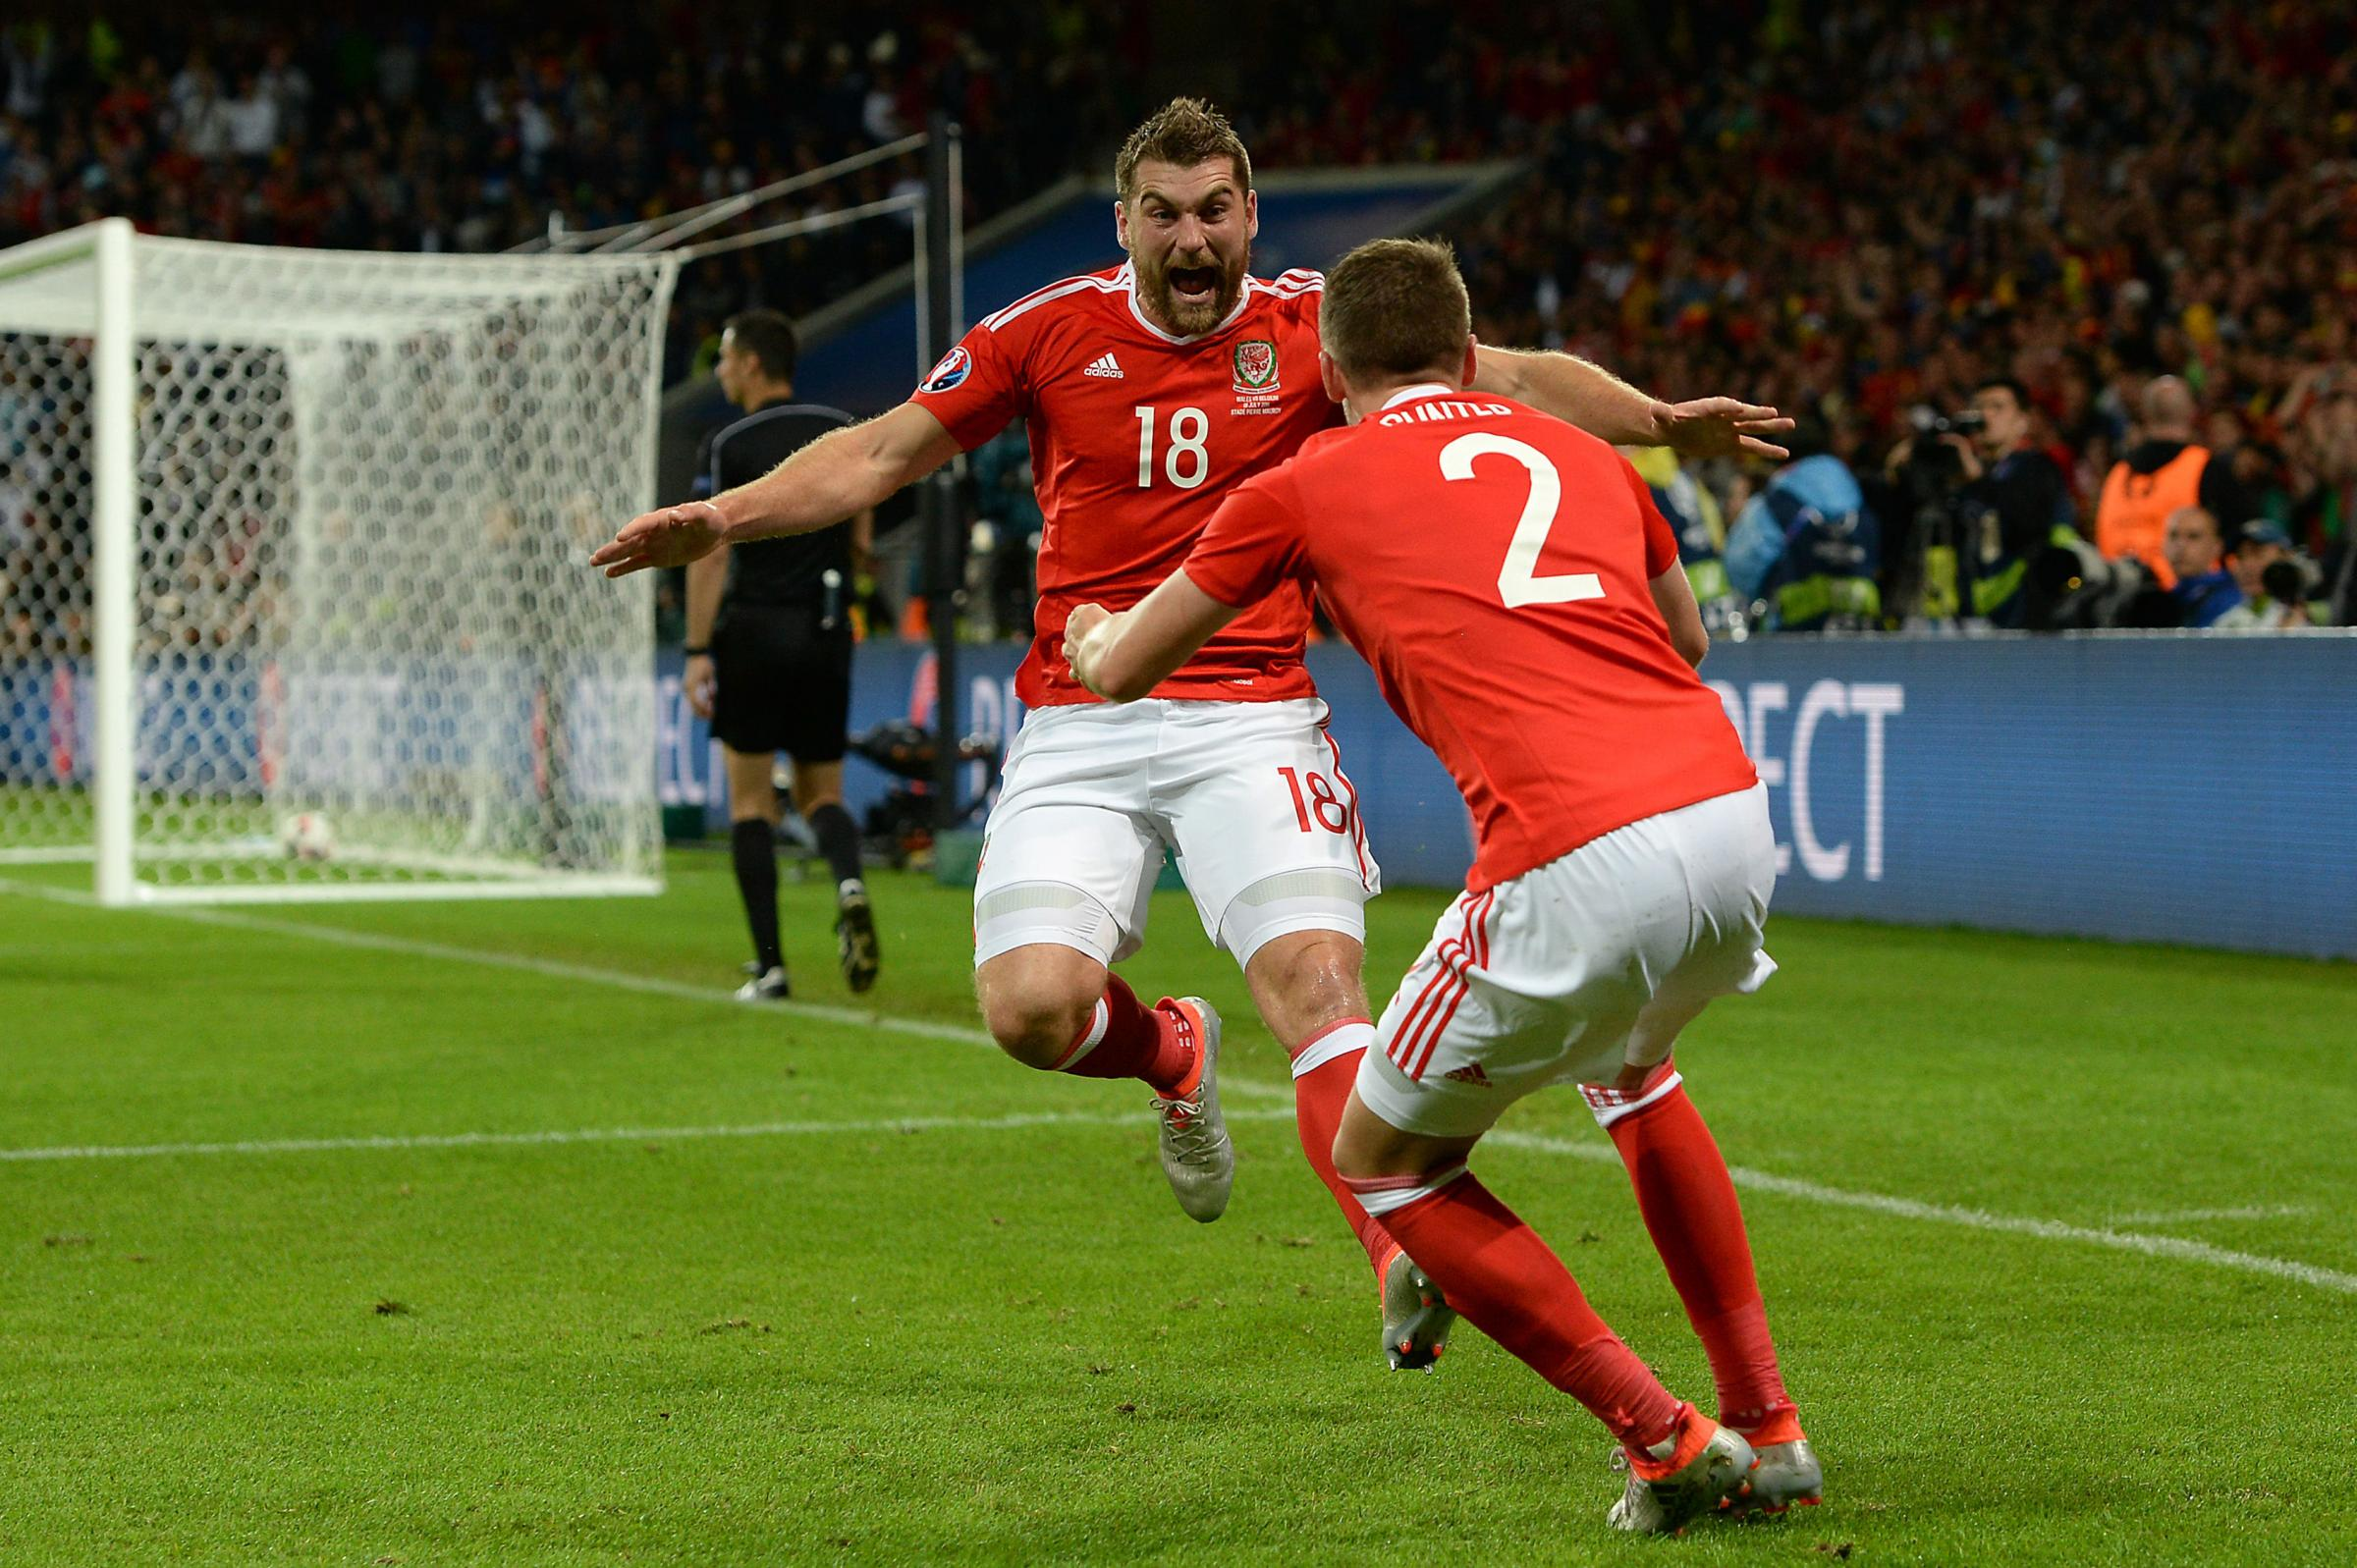 Sam Vokes celebrates his goal for Wales against Belgium in the Euro 2016 quarter-final